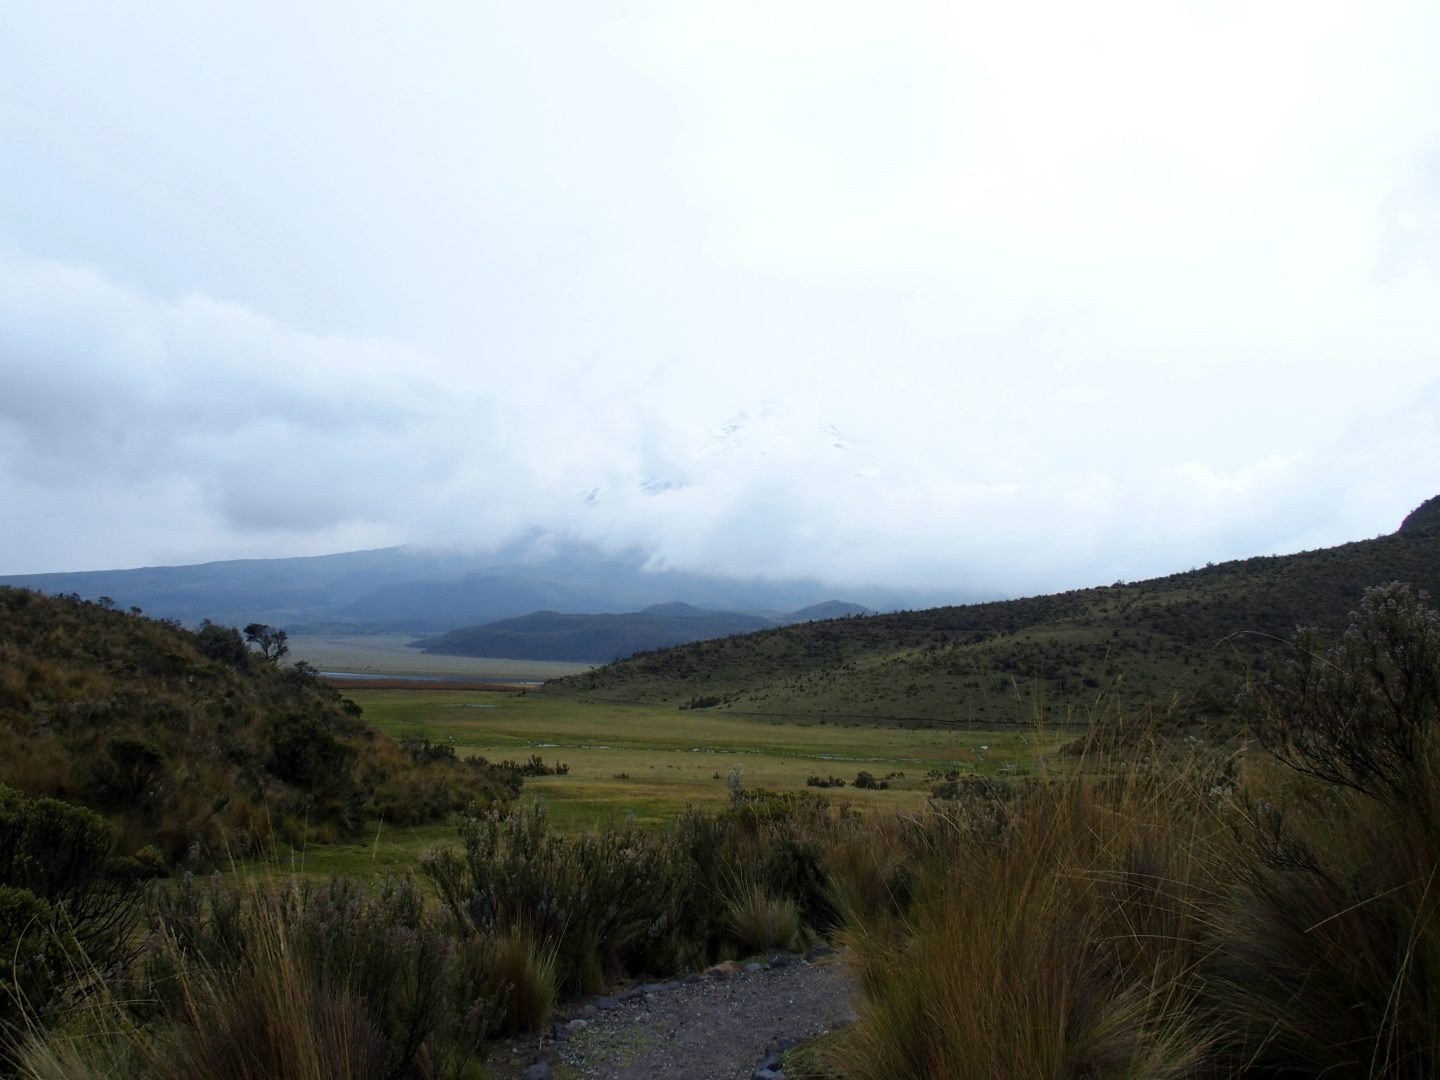 Paysage pampa pied volcan Cotopaxi Equateur